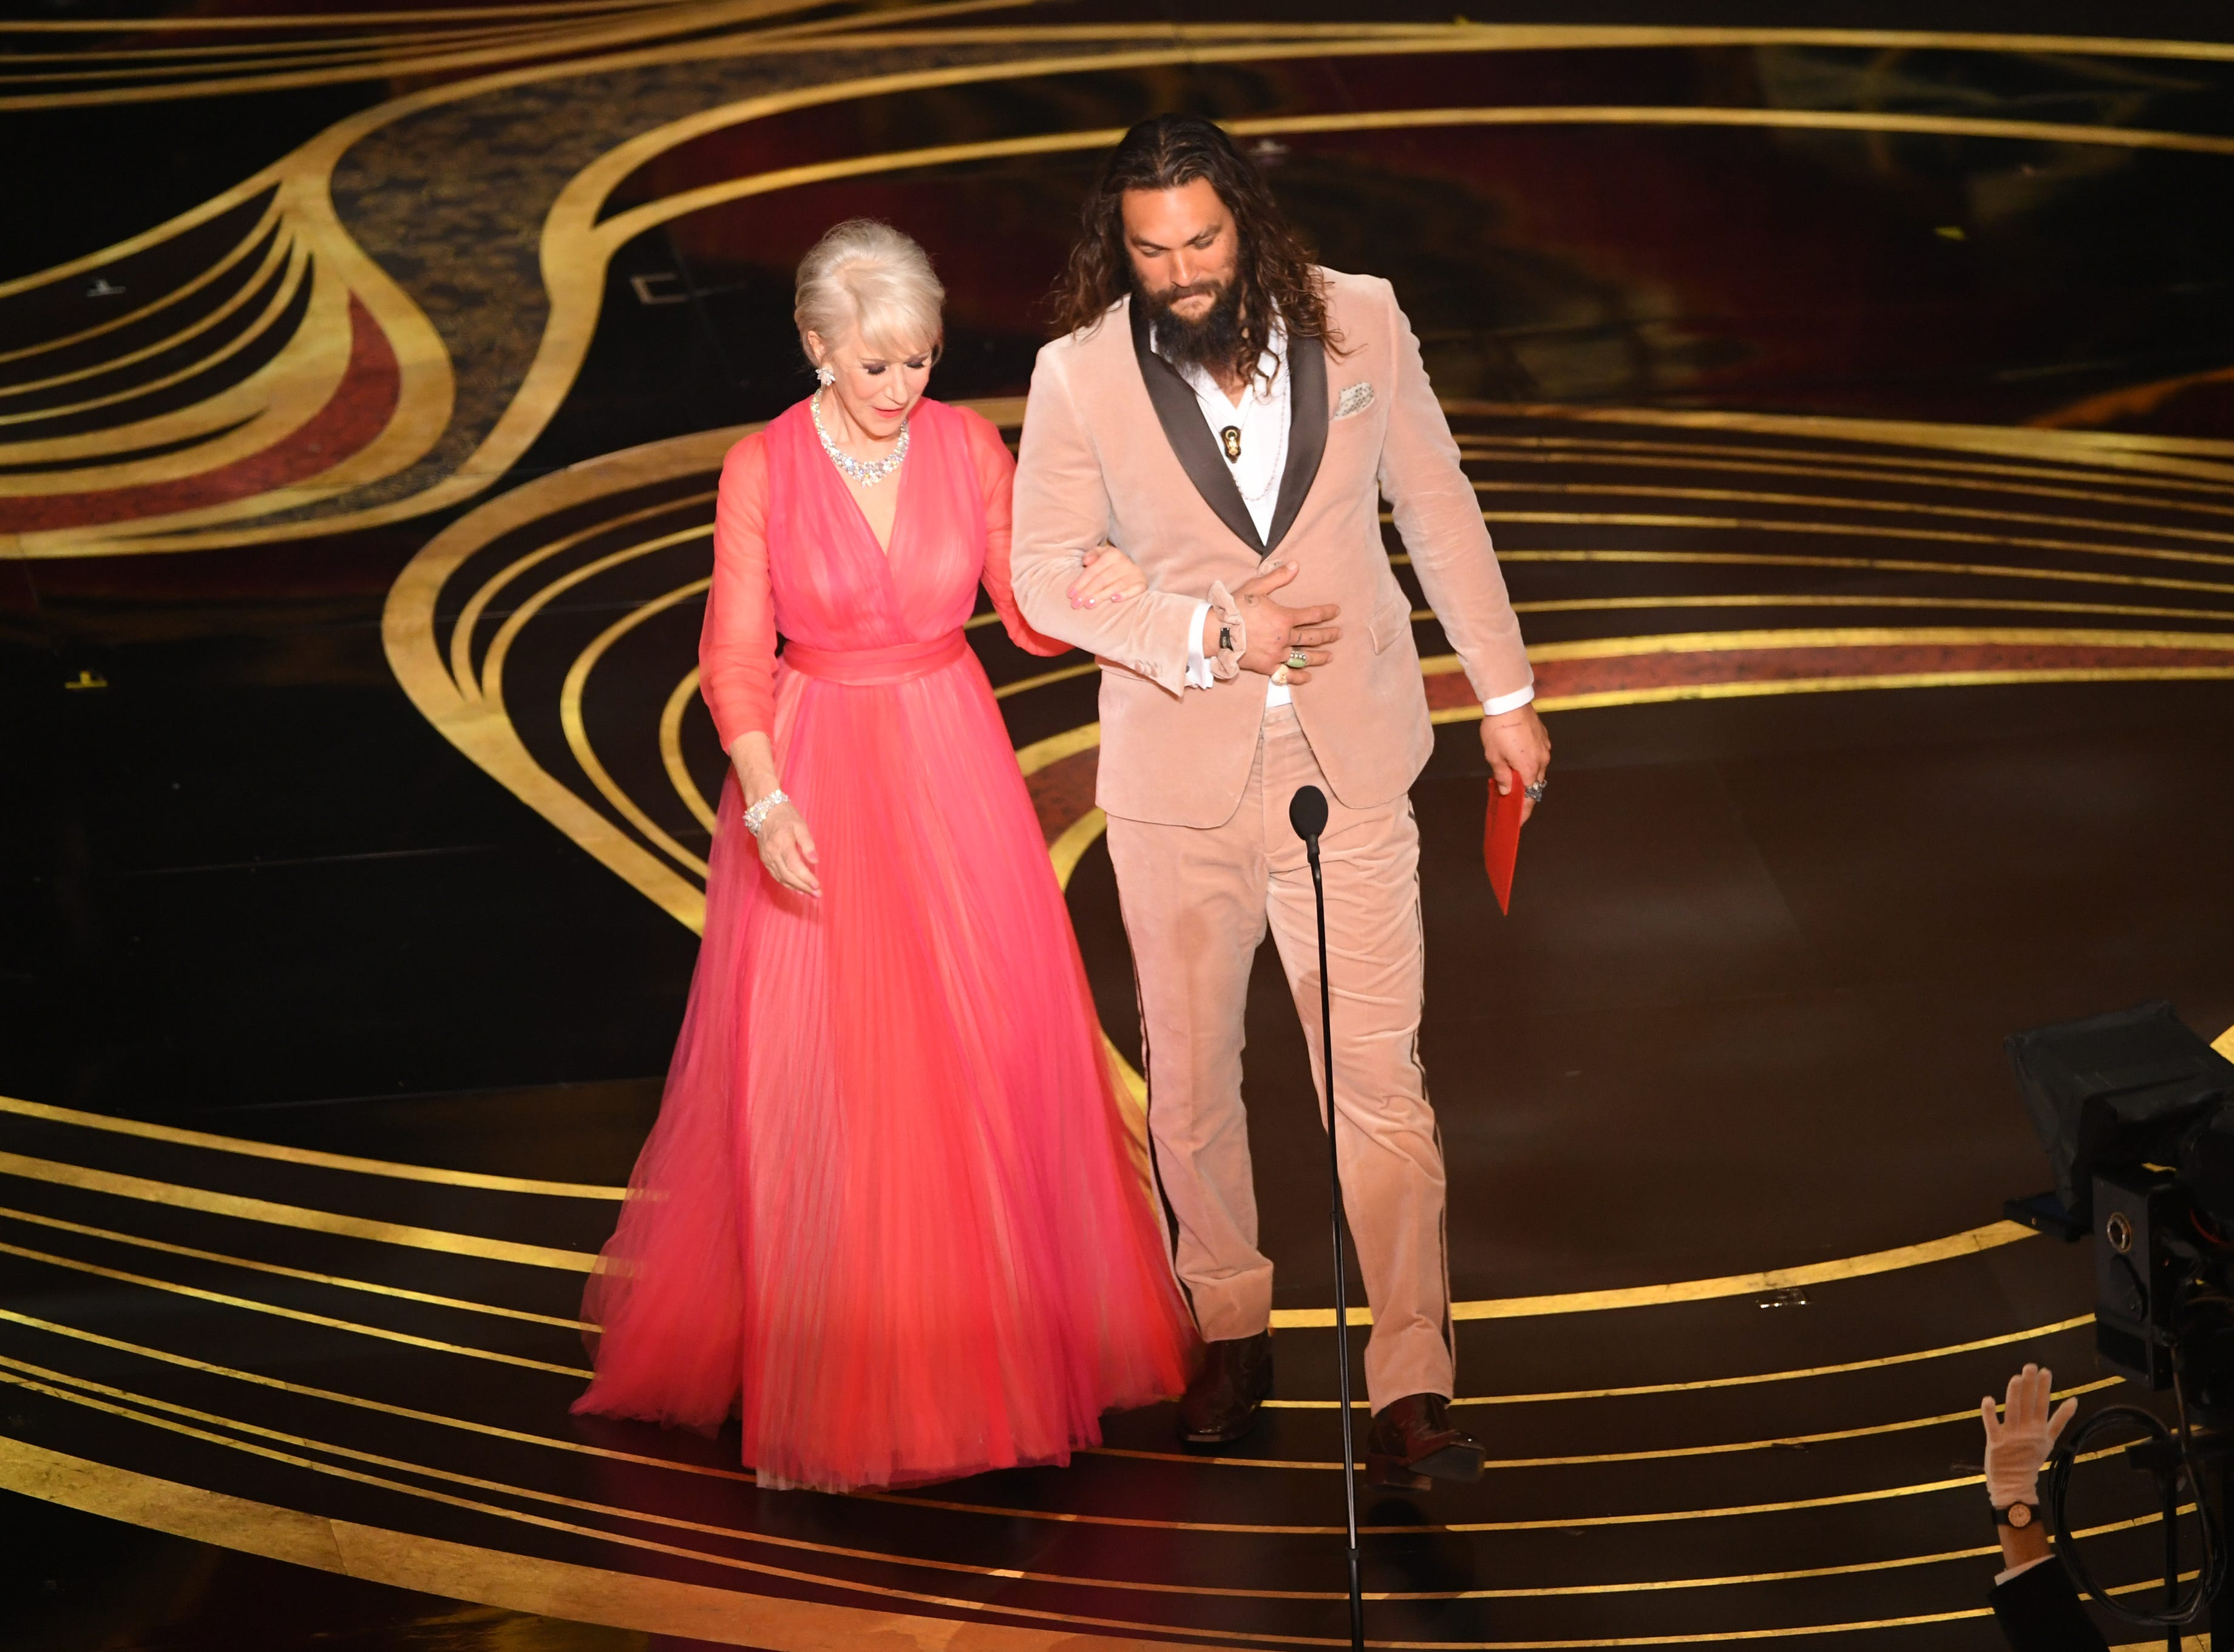 Helen Mirren and Jason Momoa walk onstage during the 91st Annual Academy Awards at Dolby Theatre on February 24, 2019 in Hollywood, California.